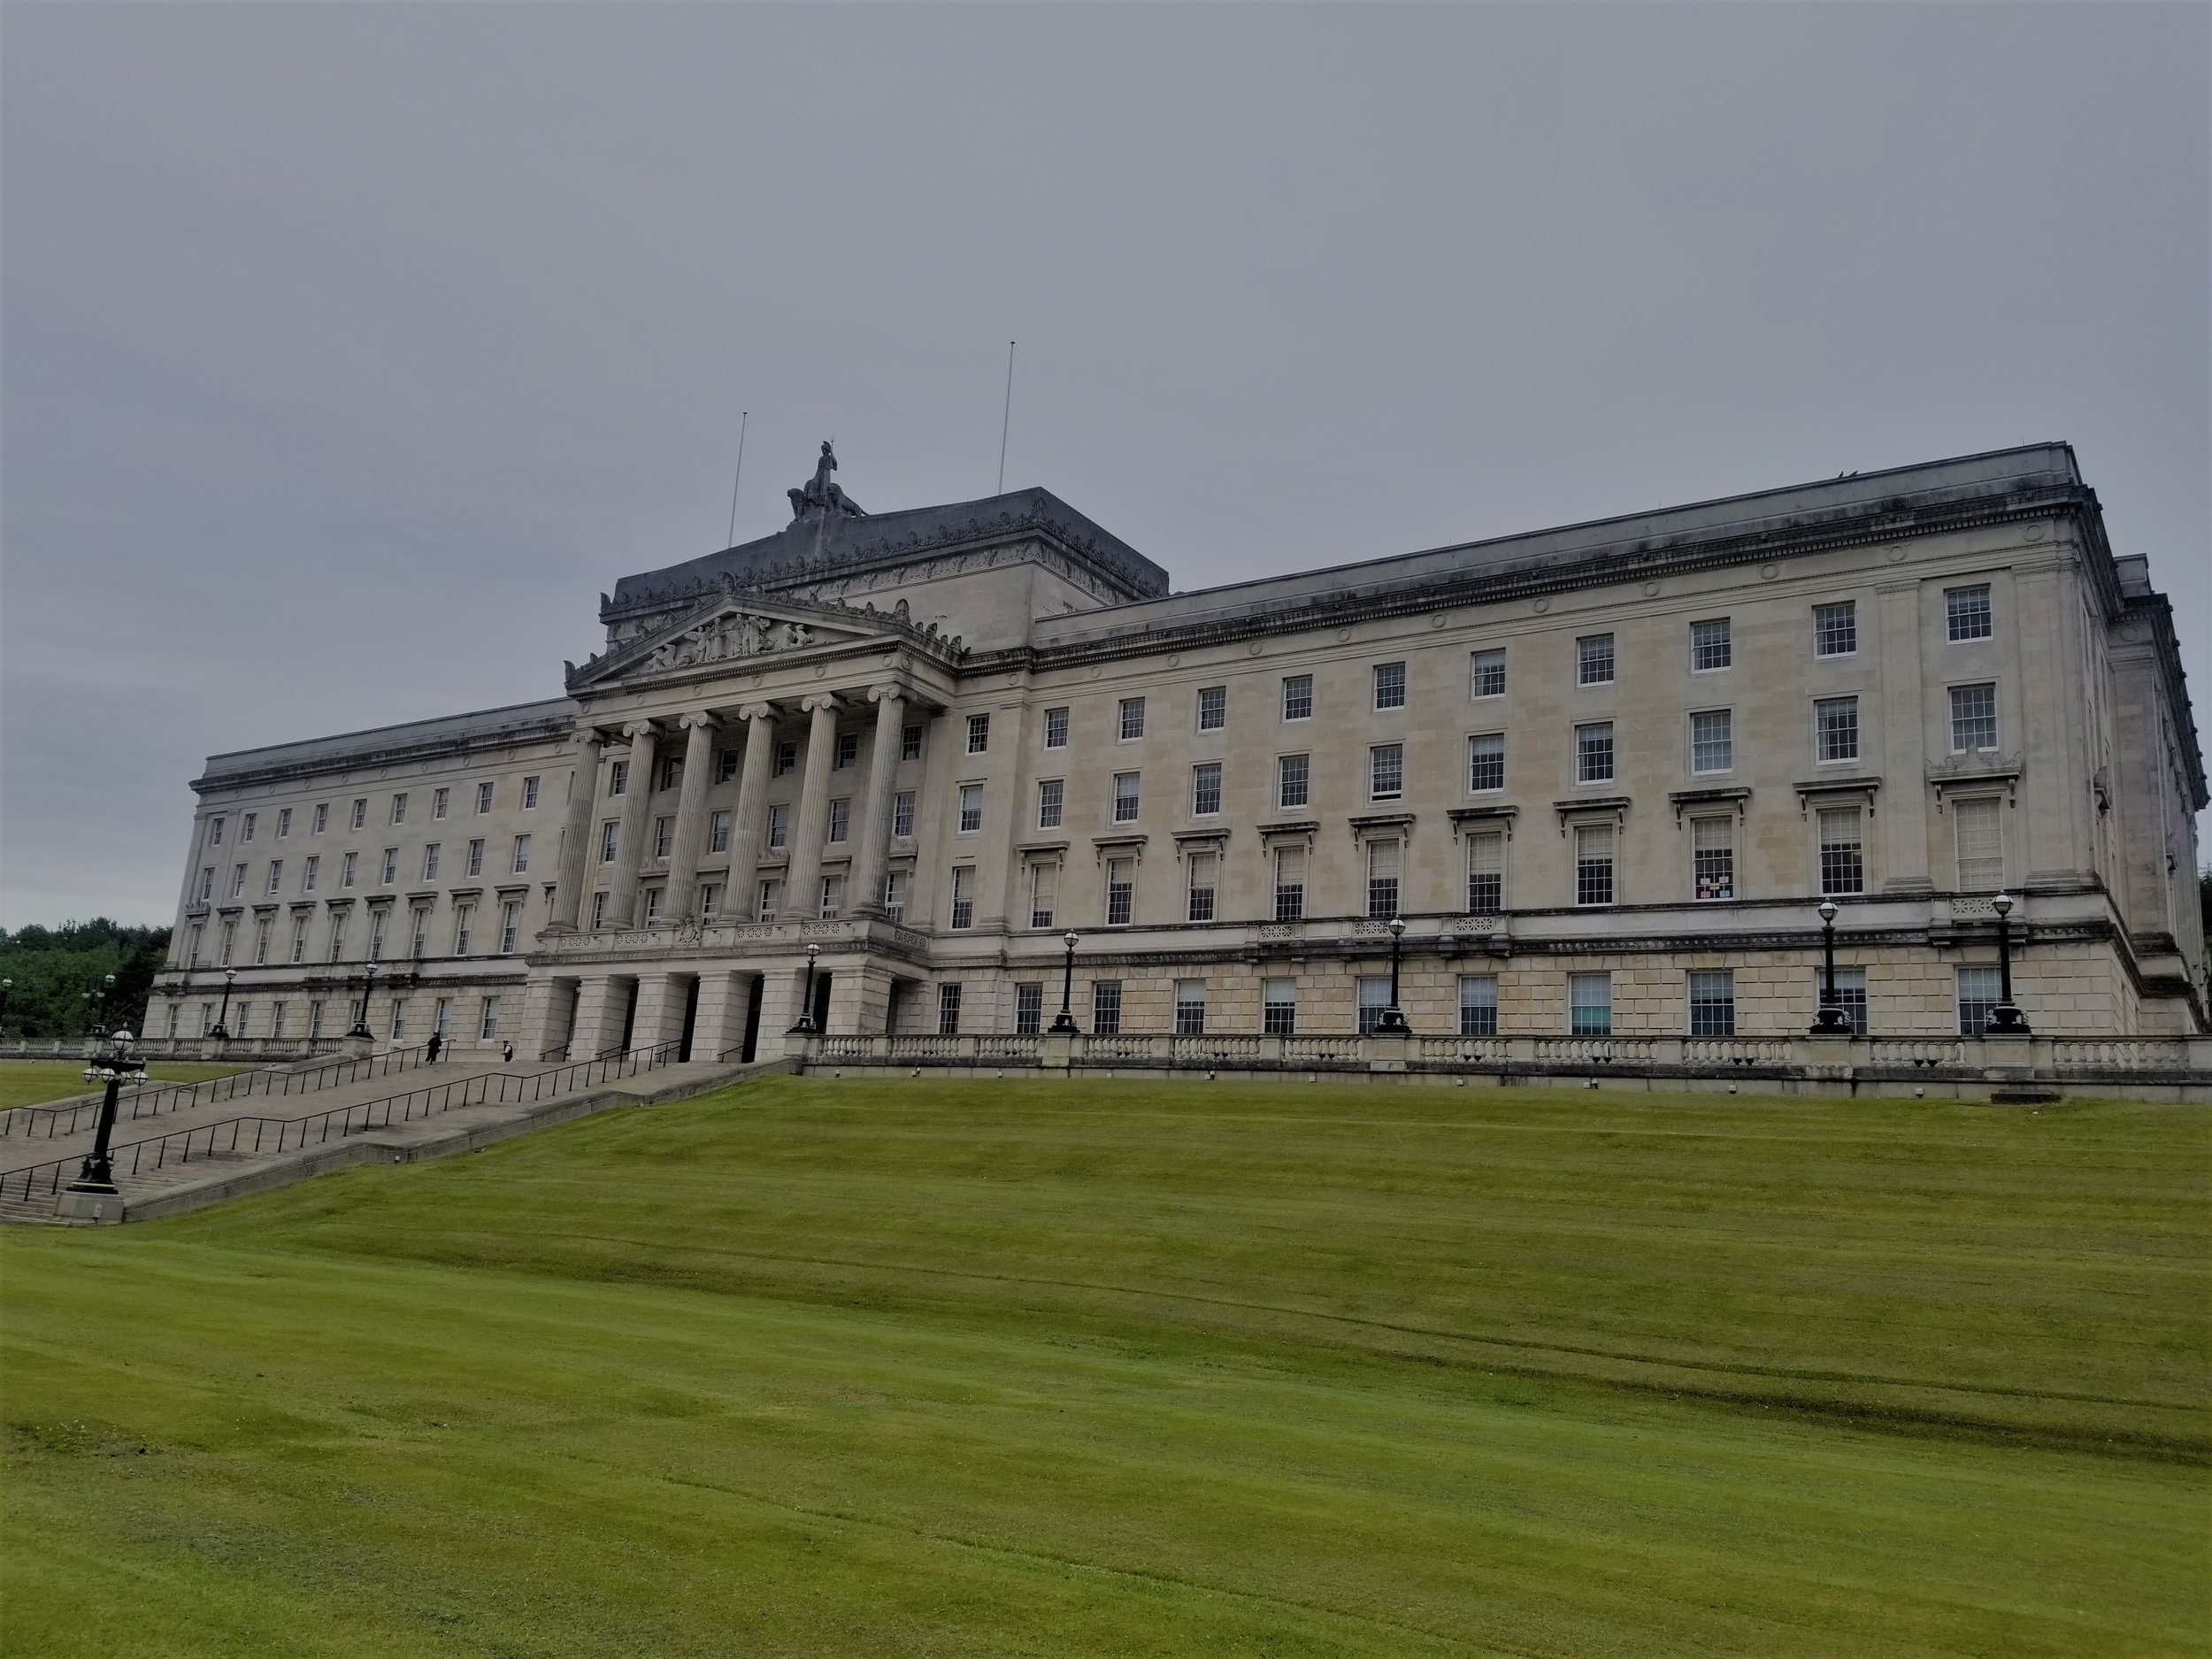 A government building for the six counties of Northern Ireland, Stormont has many symbolic pieces throughout, and is situated in a quiet, beautiful part of Belfast. Photo credit: Morrill, 2019